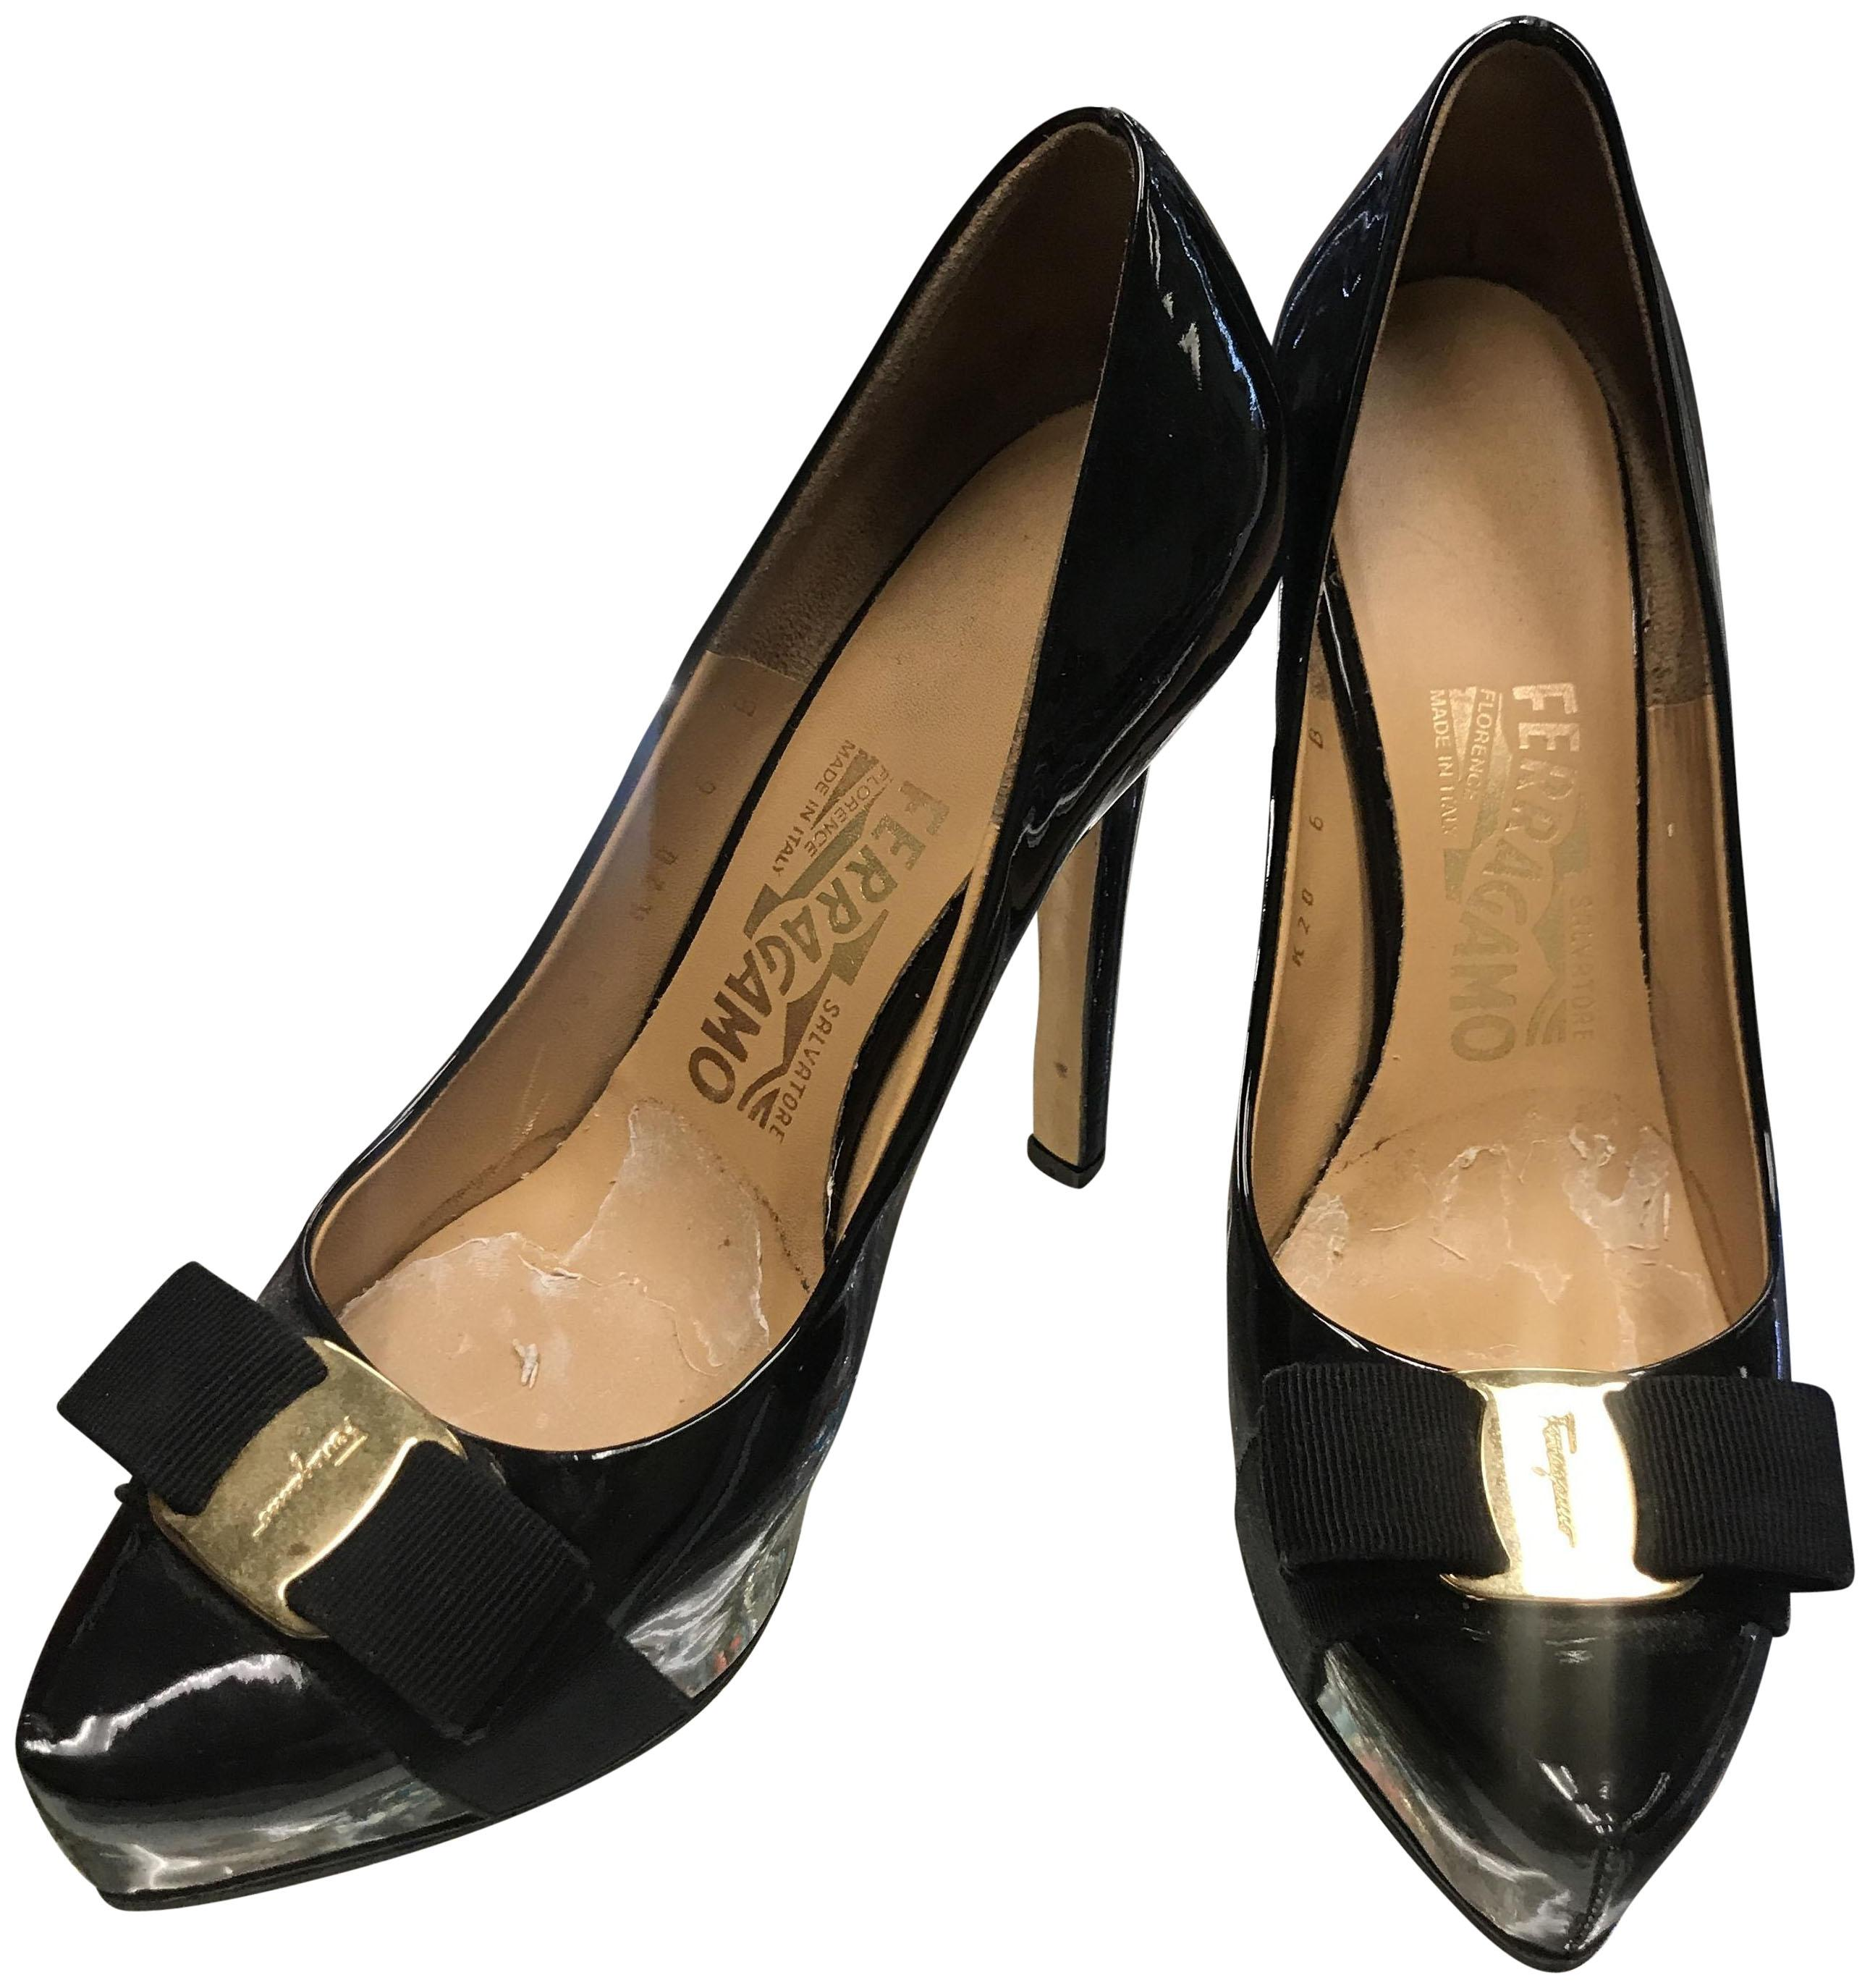 good selling cheap price Salvatore Ferragamo Patent Leather Bow-Accented Pumps discount with credit card EfuBODfsb